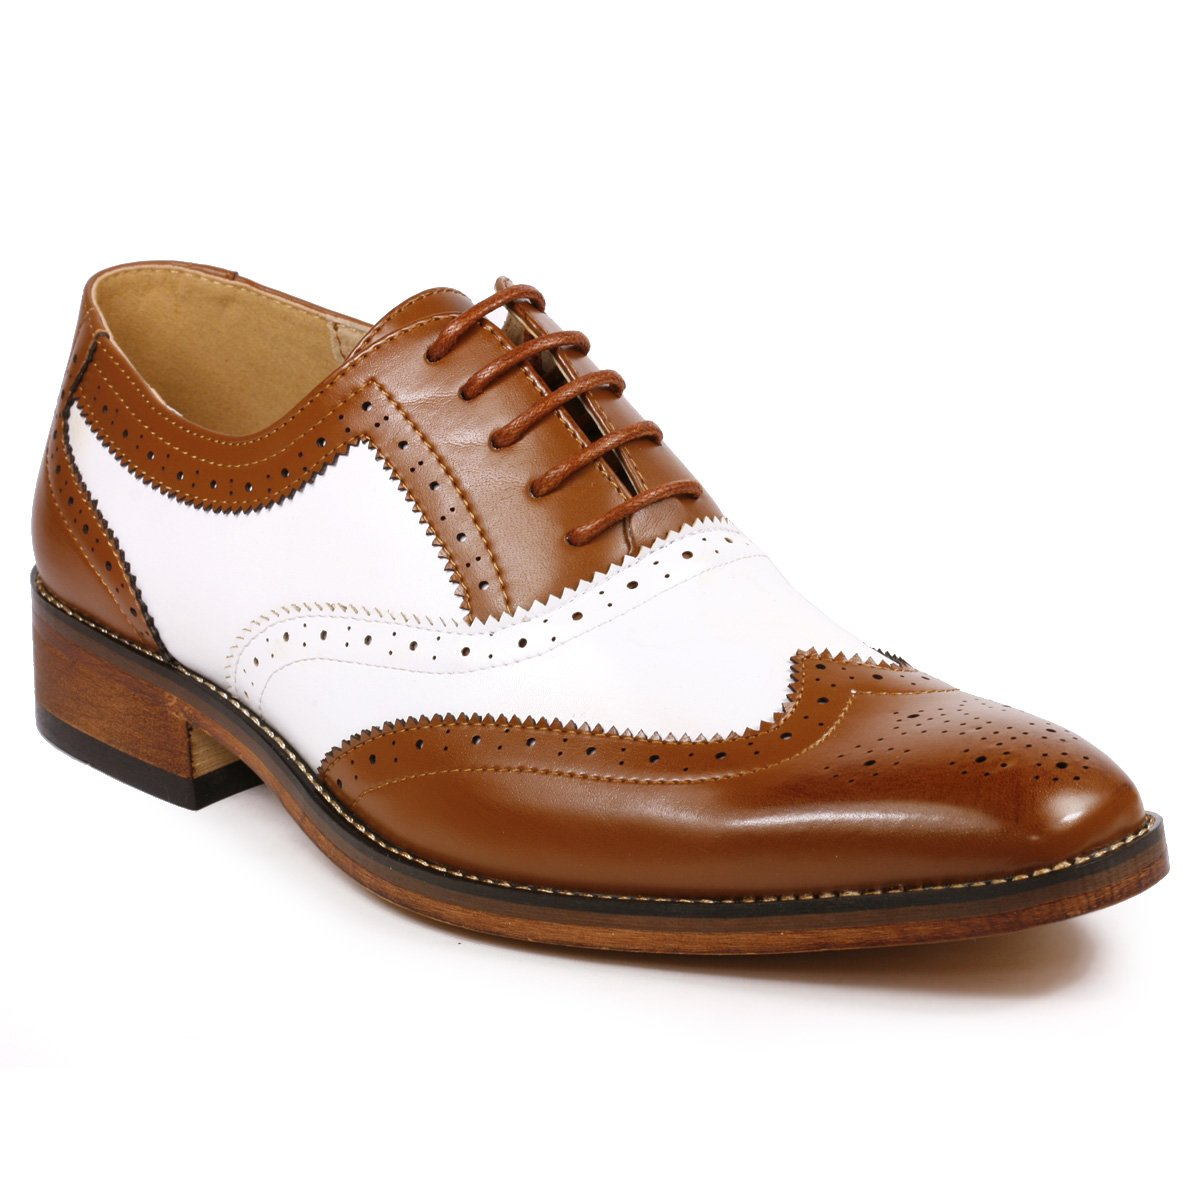 1920s Style Mens Shoes | Peaky Blinders Boots Mens Two Tone Perforated Wing Tip Lace Up Oxford Dress Shoes Metrocharm MC118  �47.49 AT vintagedancer.com